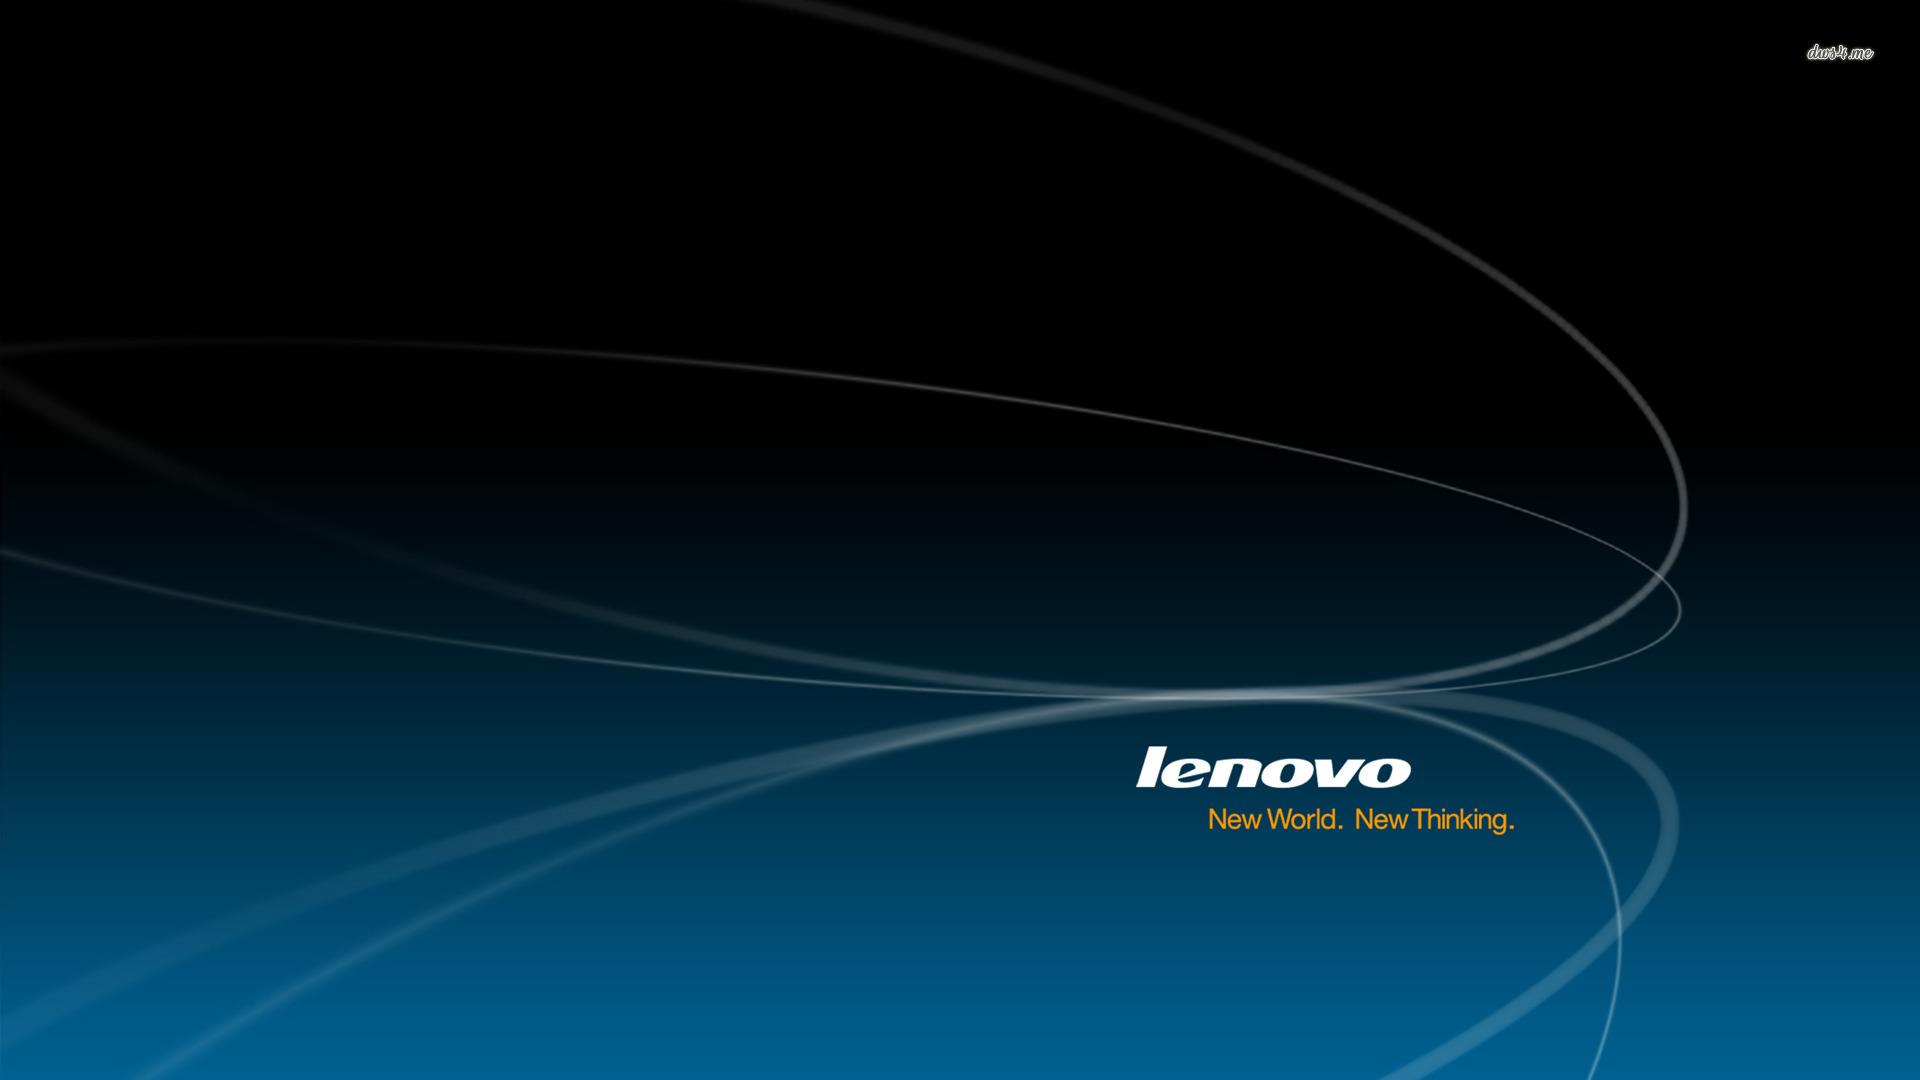 27 handpicked lenovo wallpapers backgrounds in hd for free download - New lenovo background ...